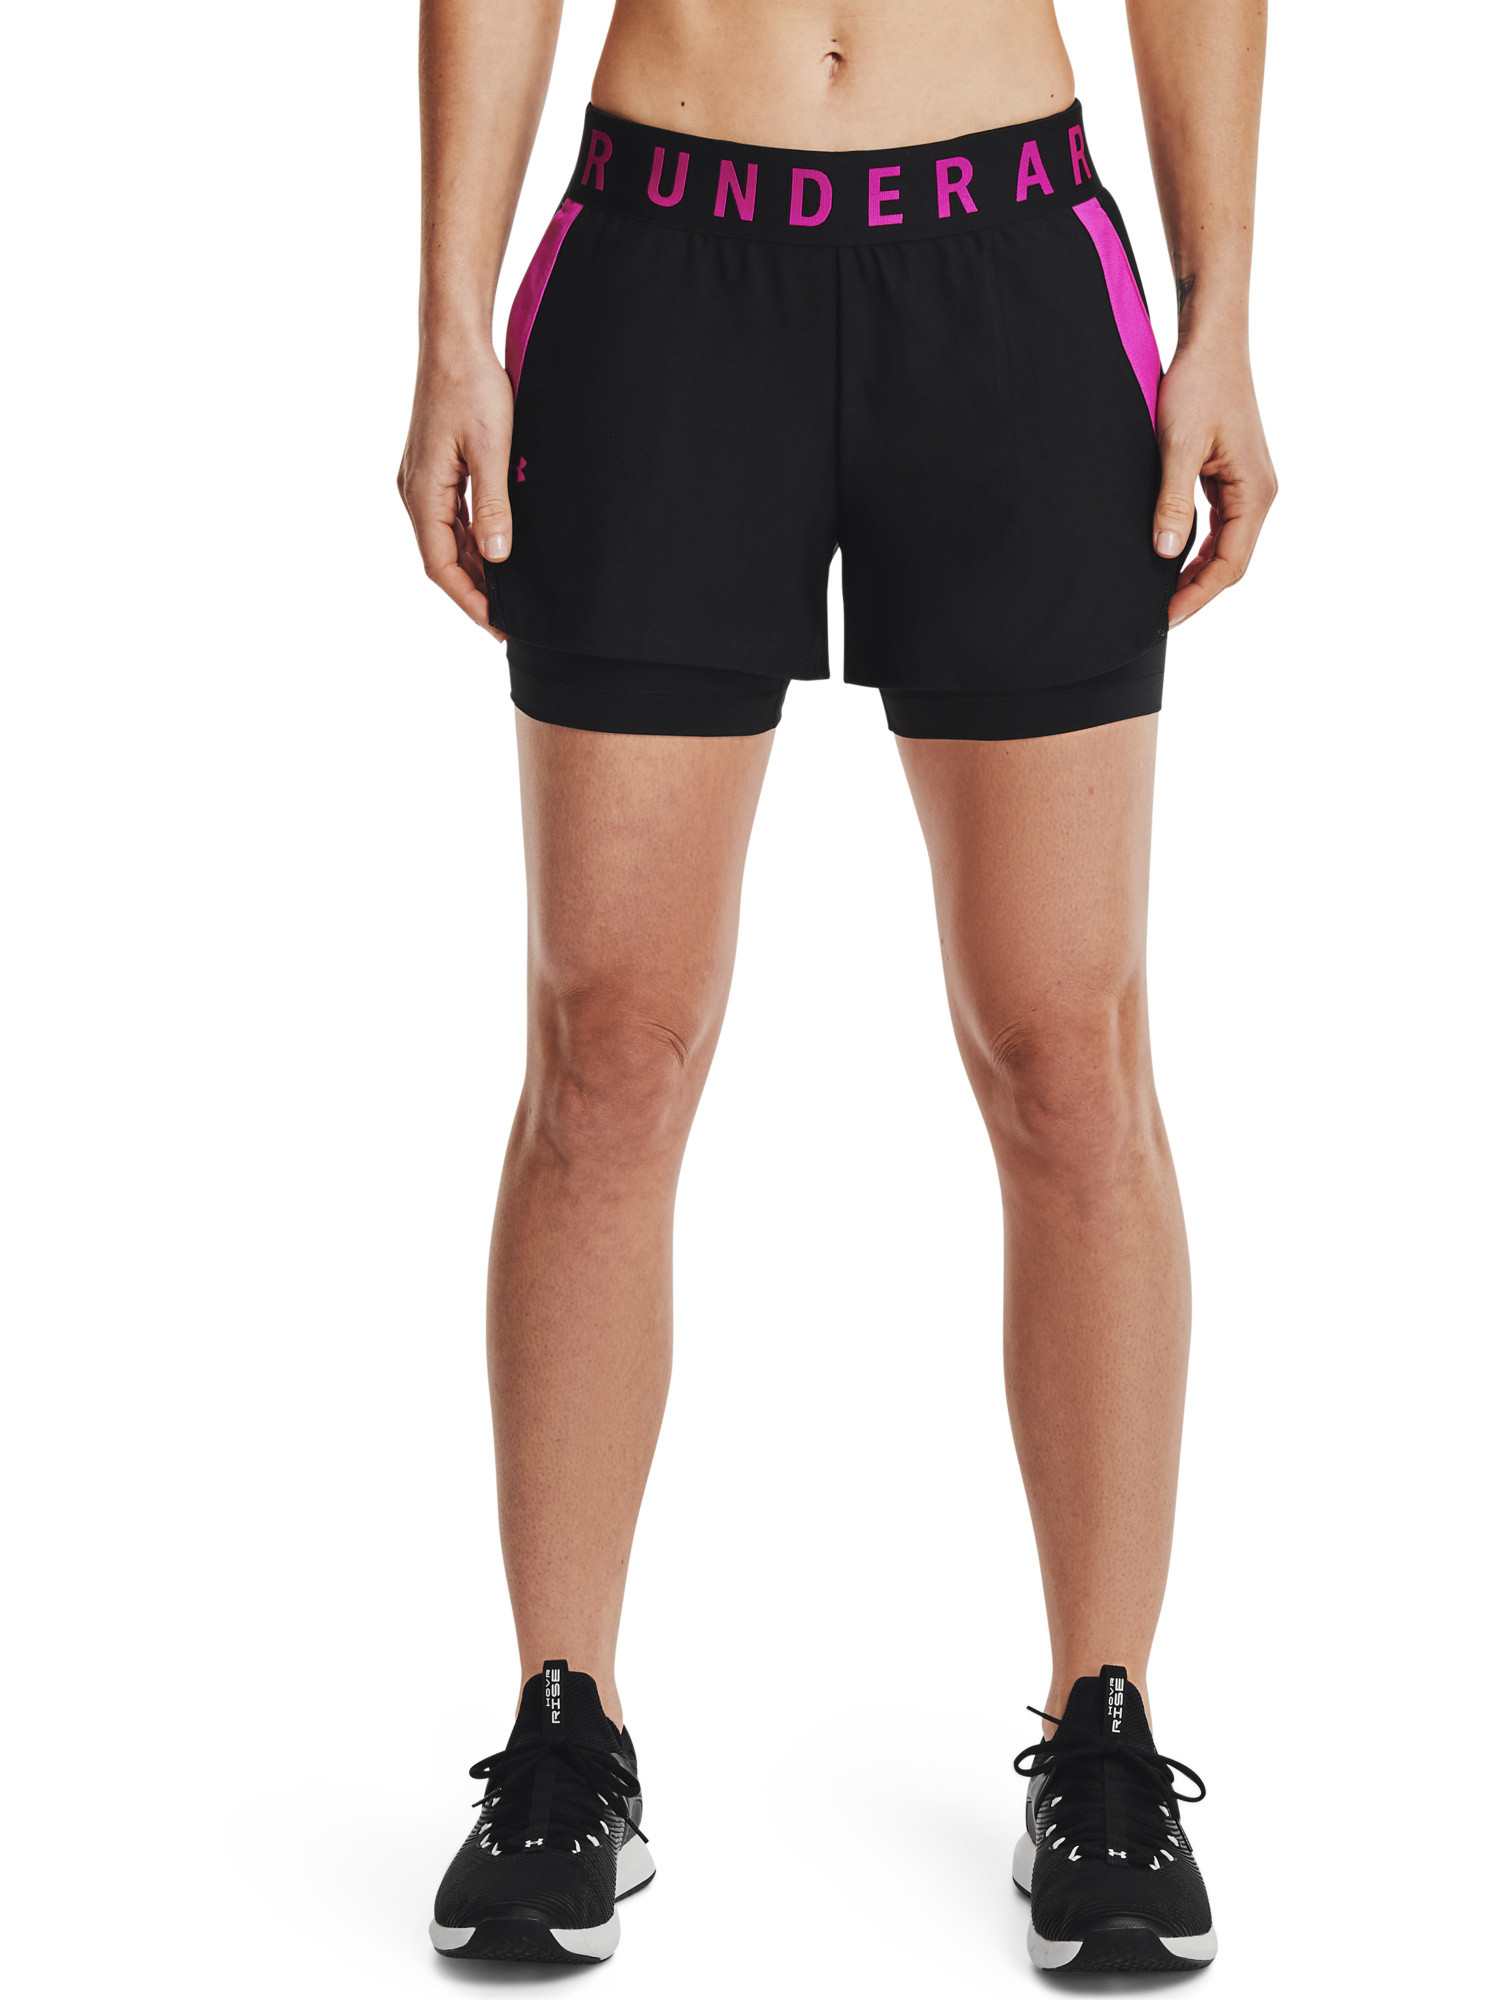 Shorts allenamento donna, Nero/Rosso, large image number 4